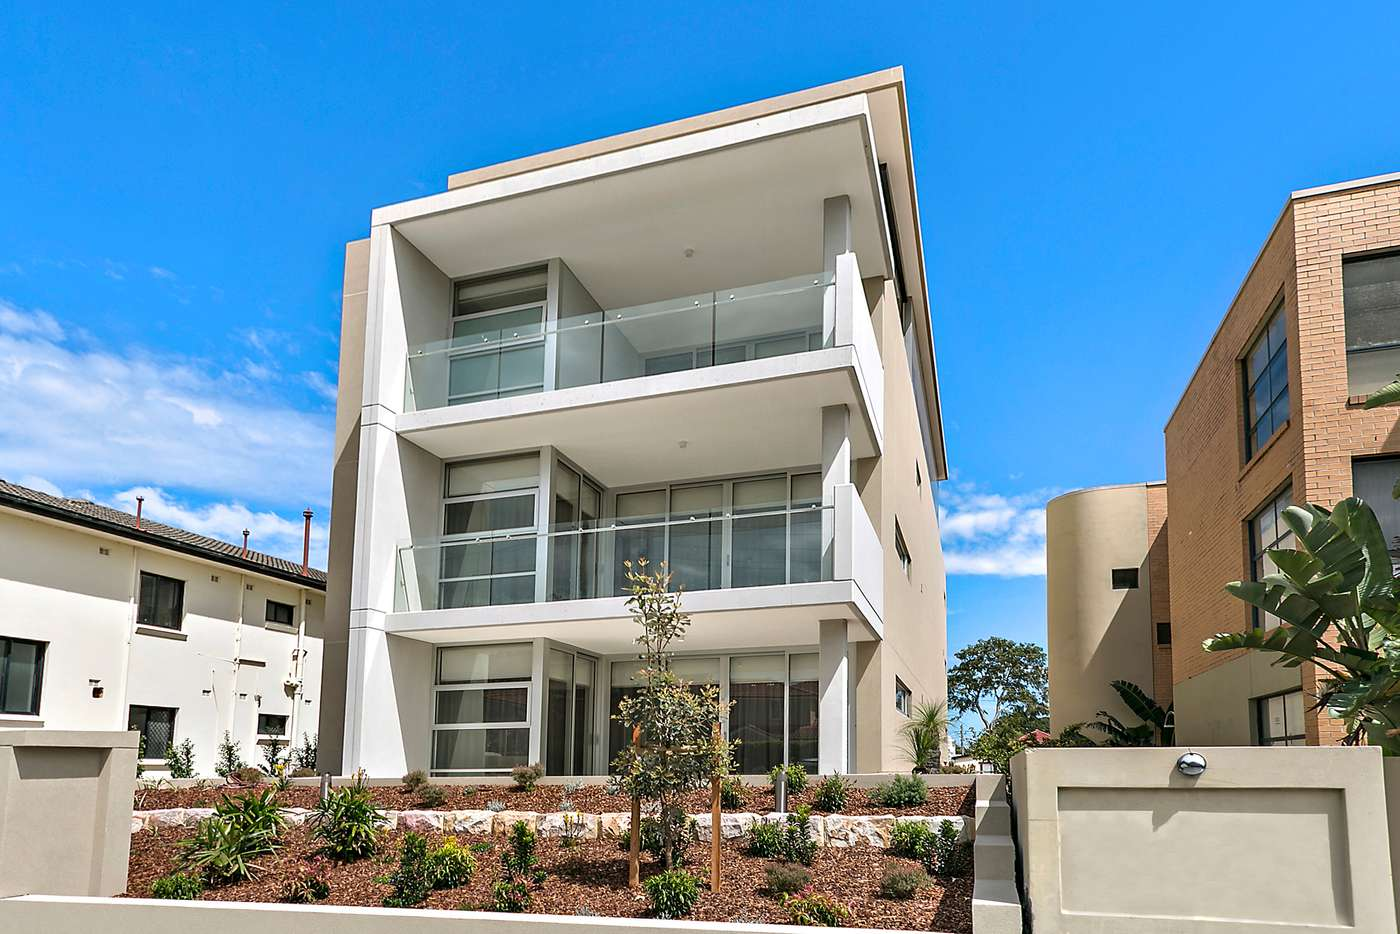 Main view of Homely apartment listing, 3/141 Clareville Avenue, Sans Souci NSW 2219